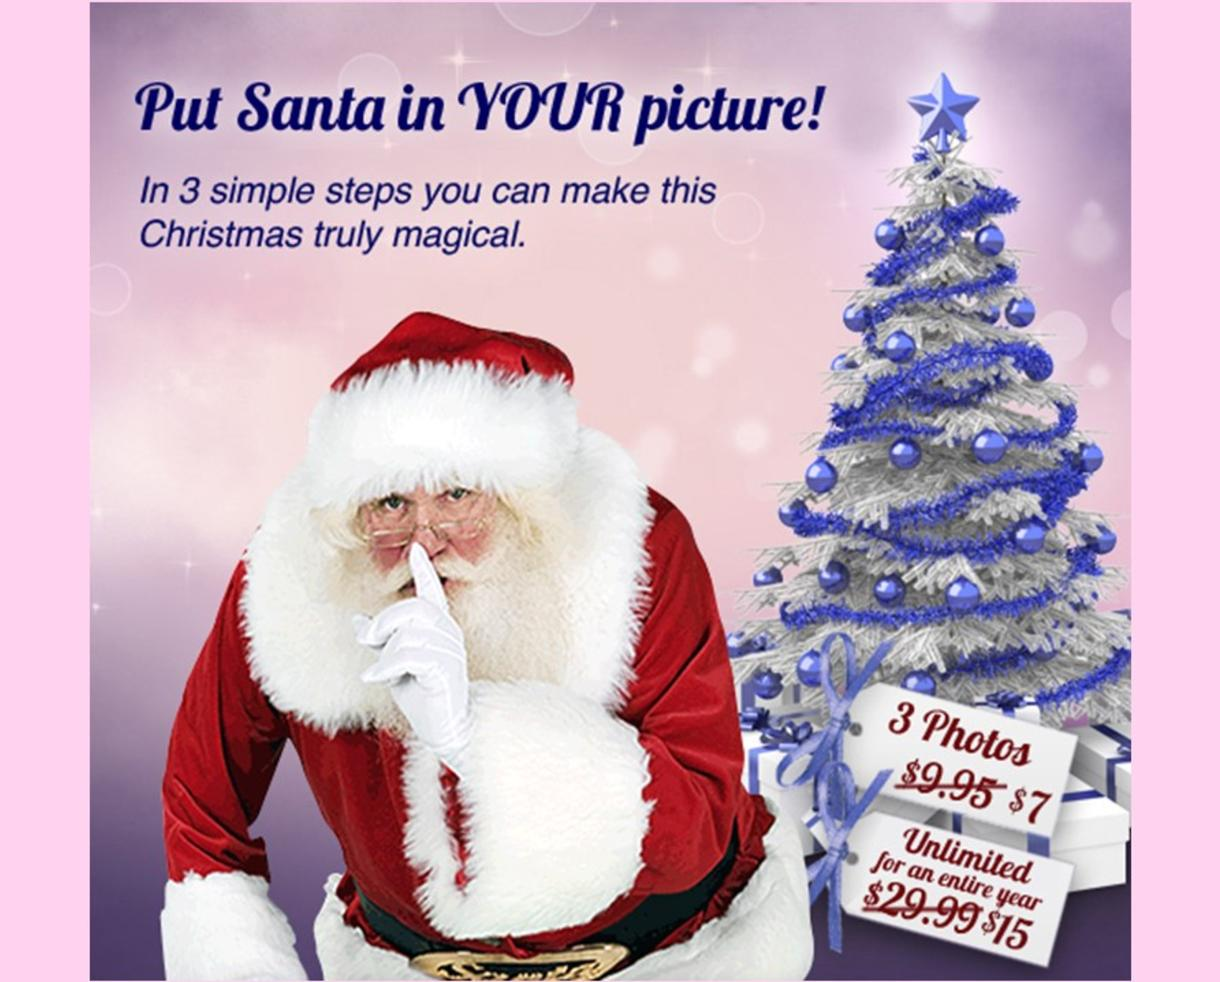 Deal 7 for three capture the magic photos seeing is believing 7 for three capture the magic photos seeing is believing put santa in your photos and make christmas truly magical or 15 for unlimited photos m4hsunfo